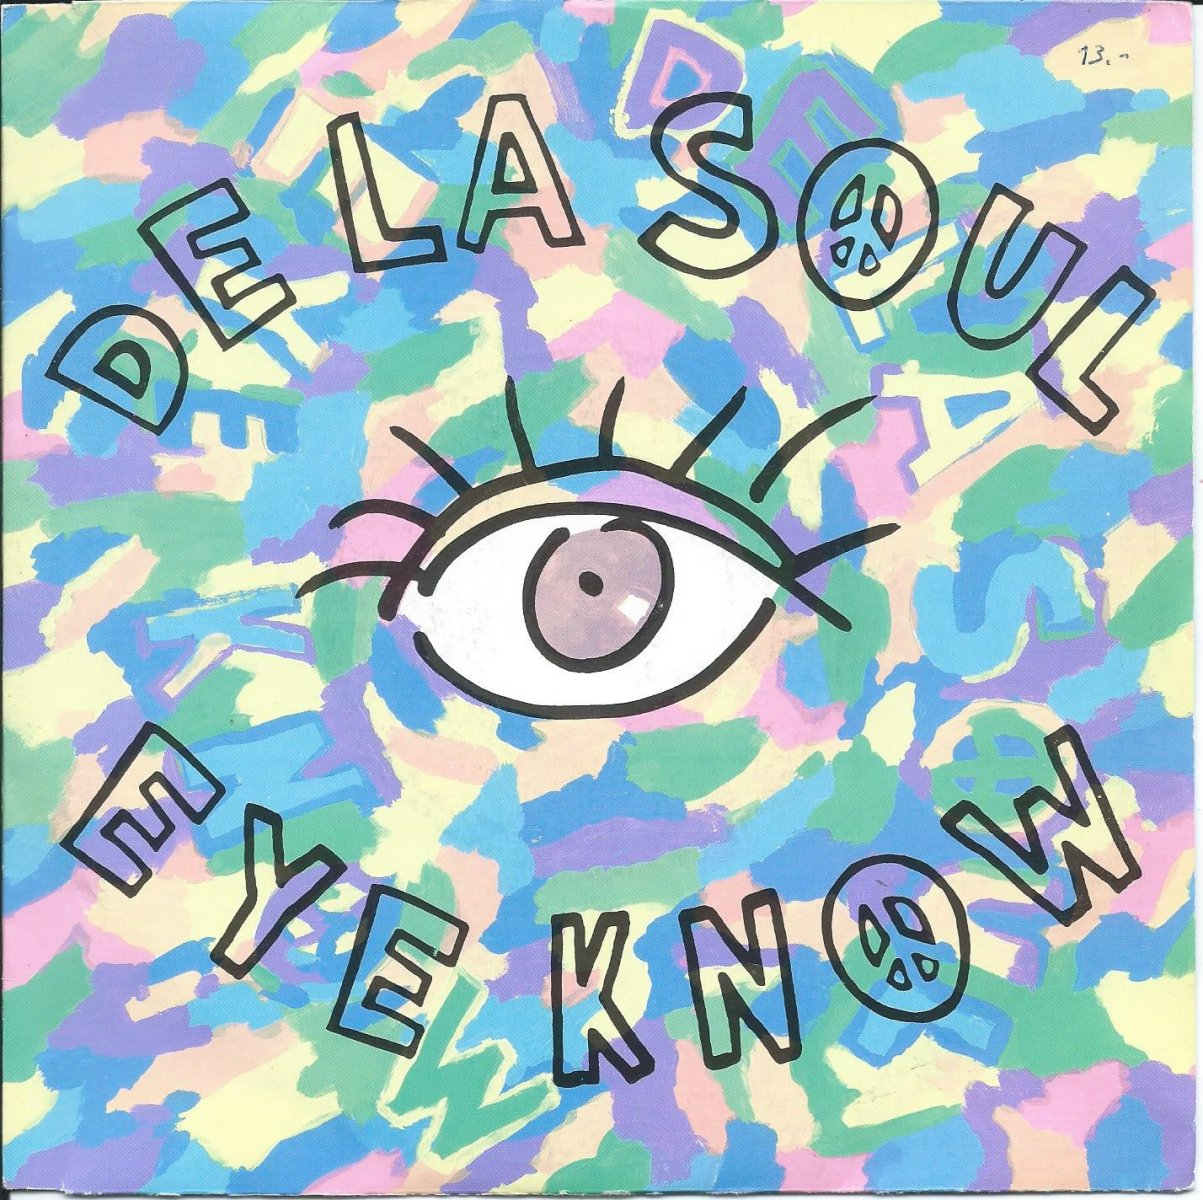 DE LA SOUL / EYE KNOW / THE MACK DADDY ON THE LEFT (7